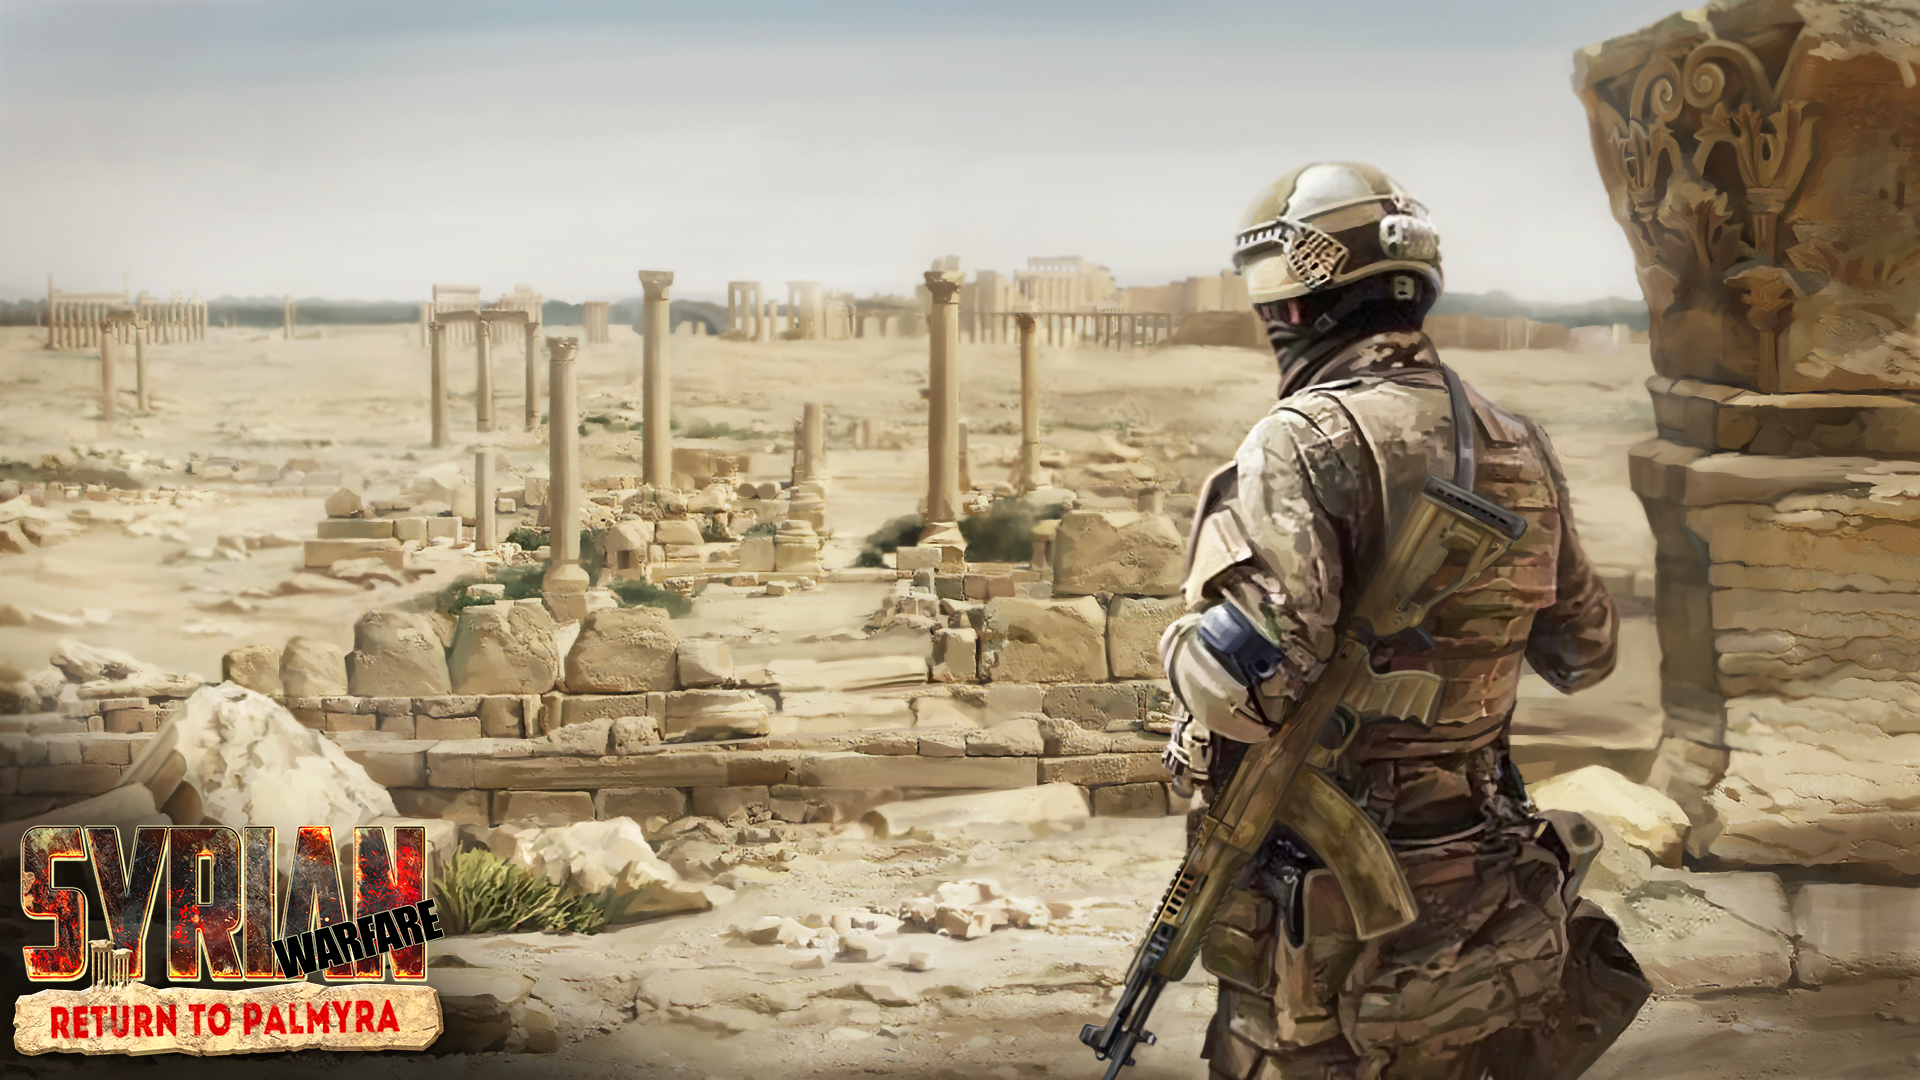 Return to Palmyra